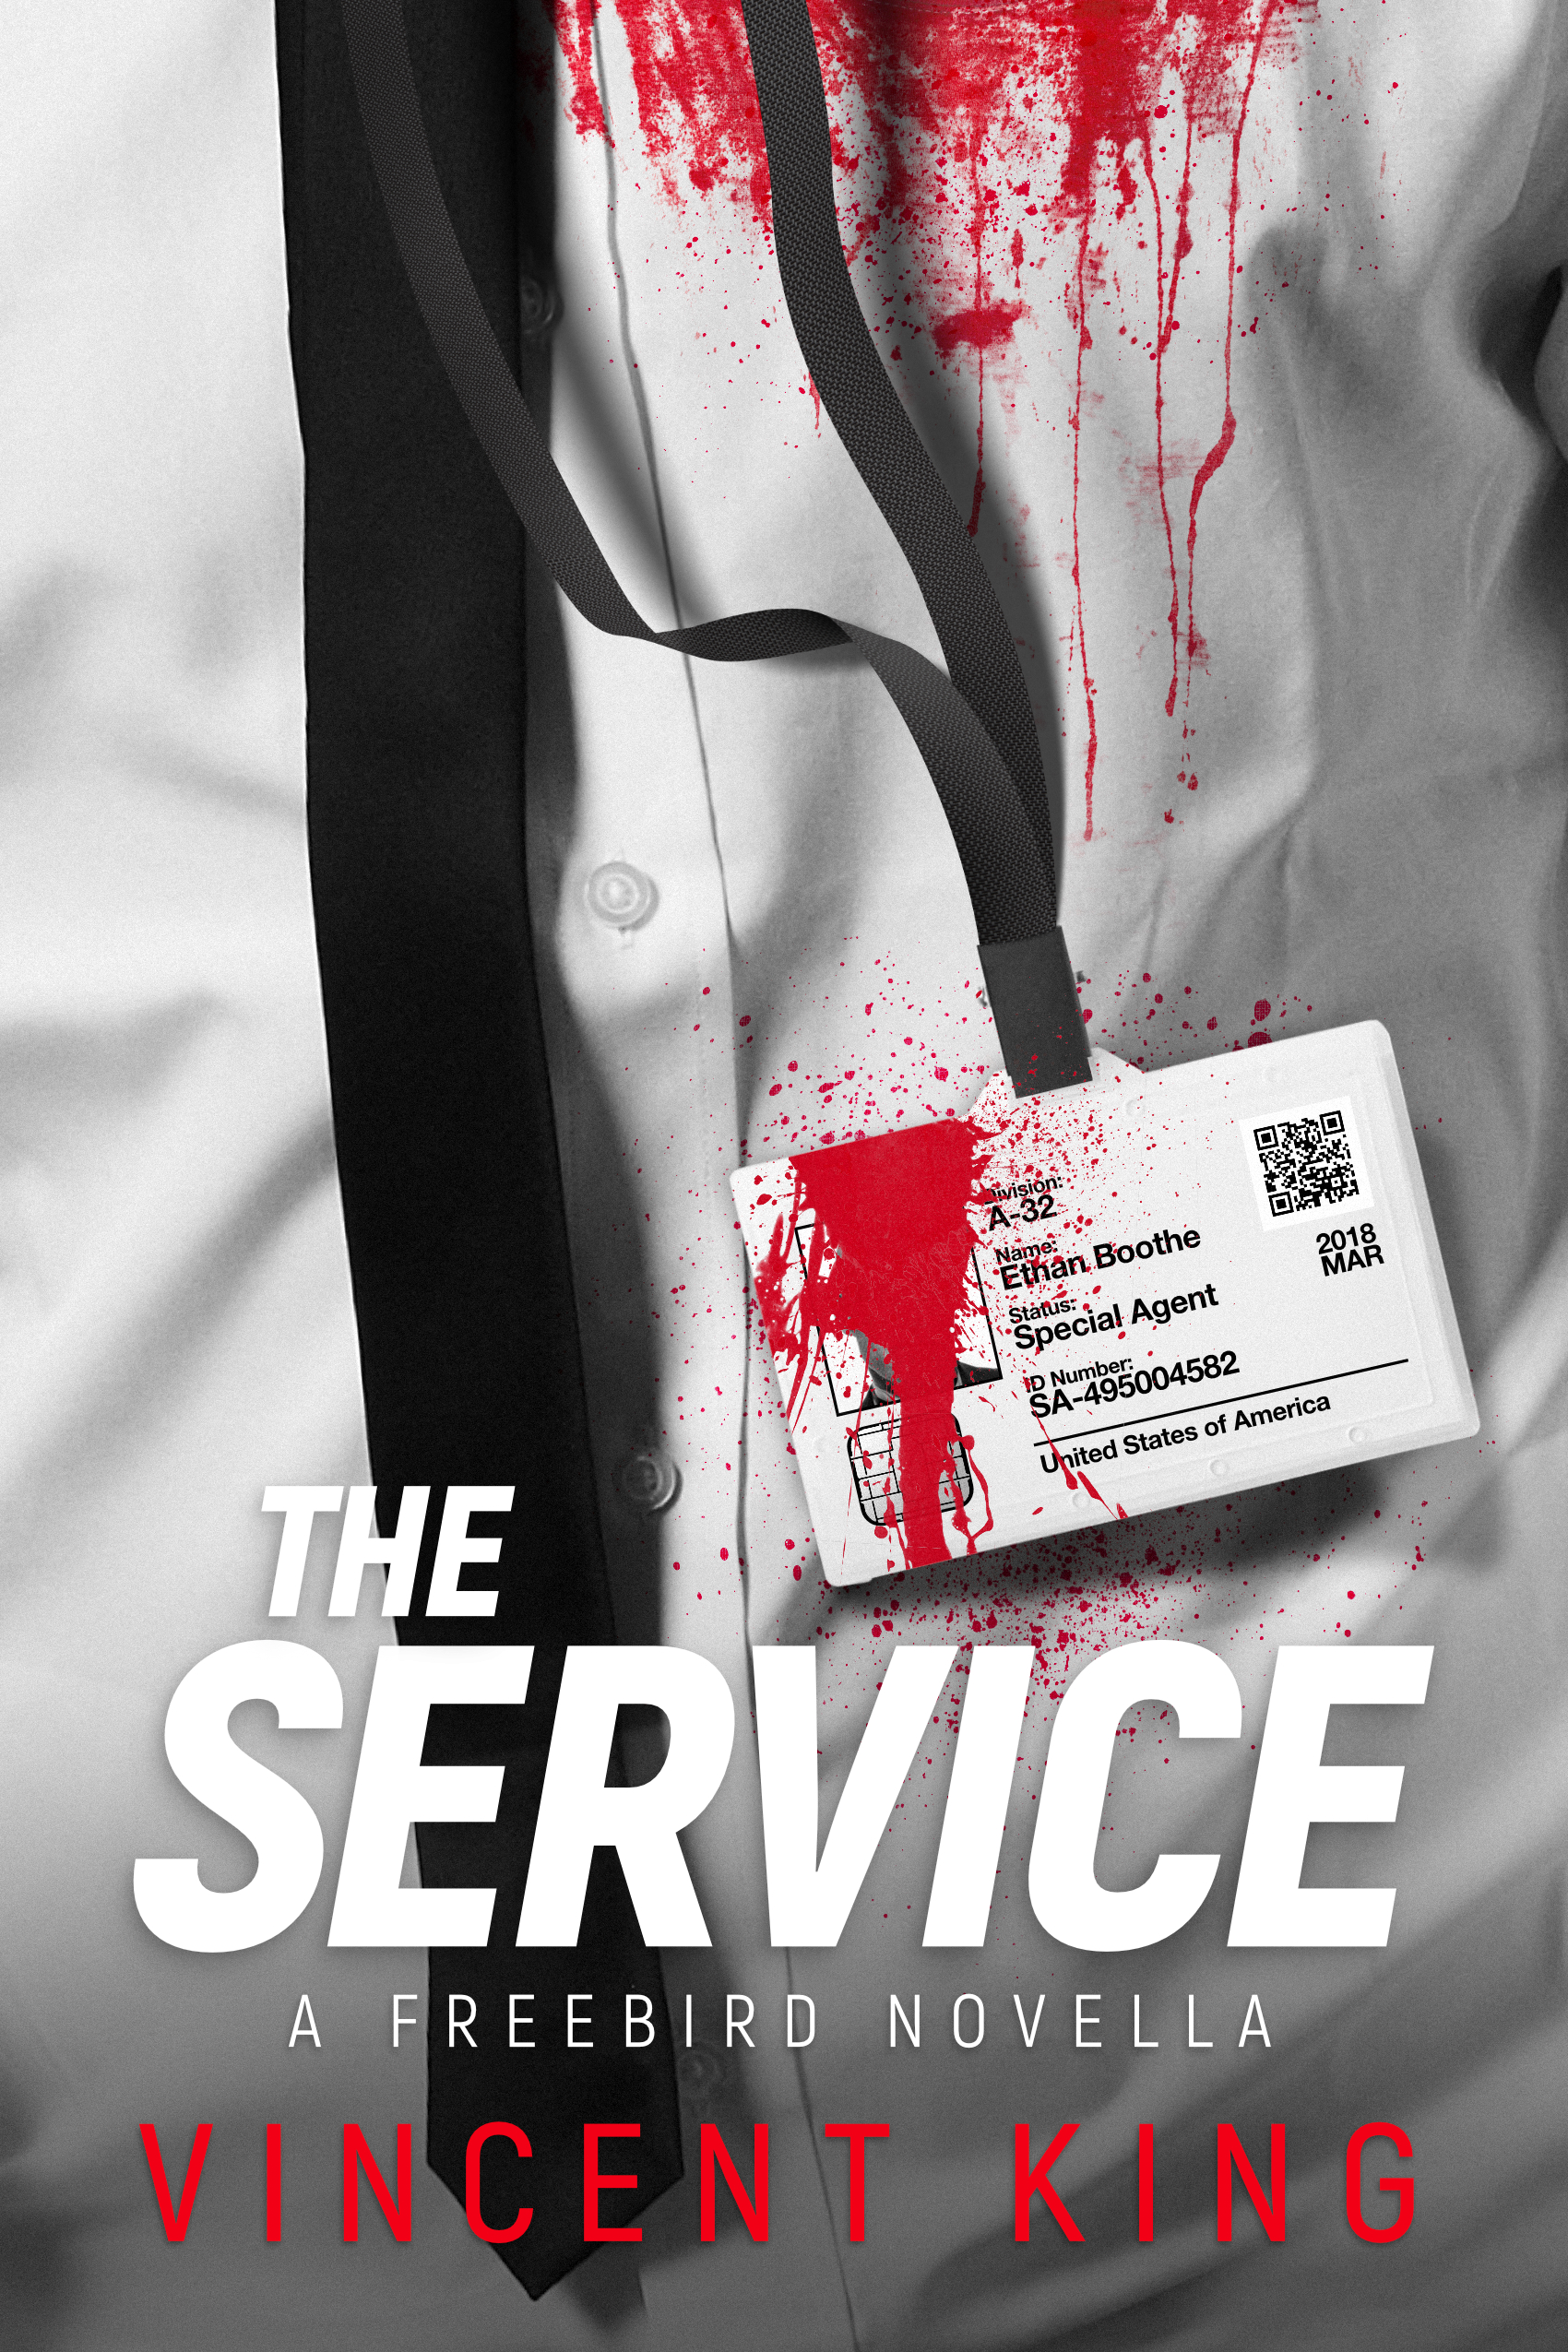 #freebooks – Freebird: The Service, a FREE Ebook by Vincent King